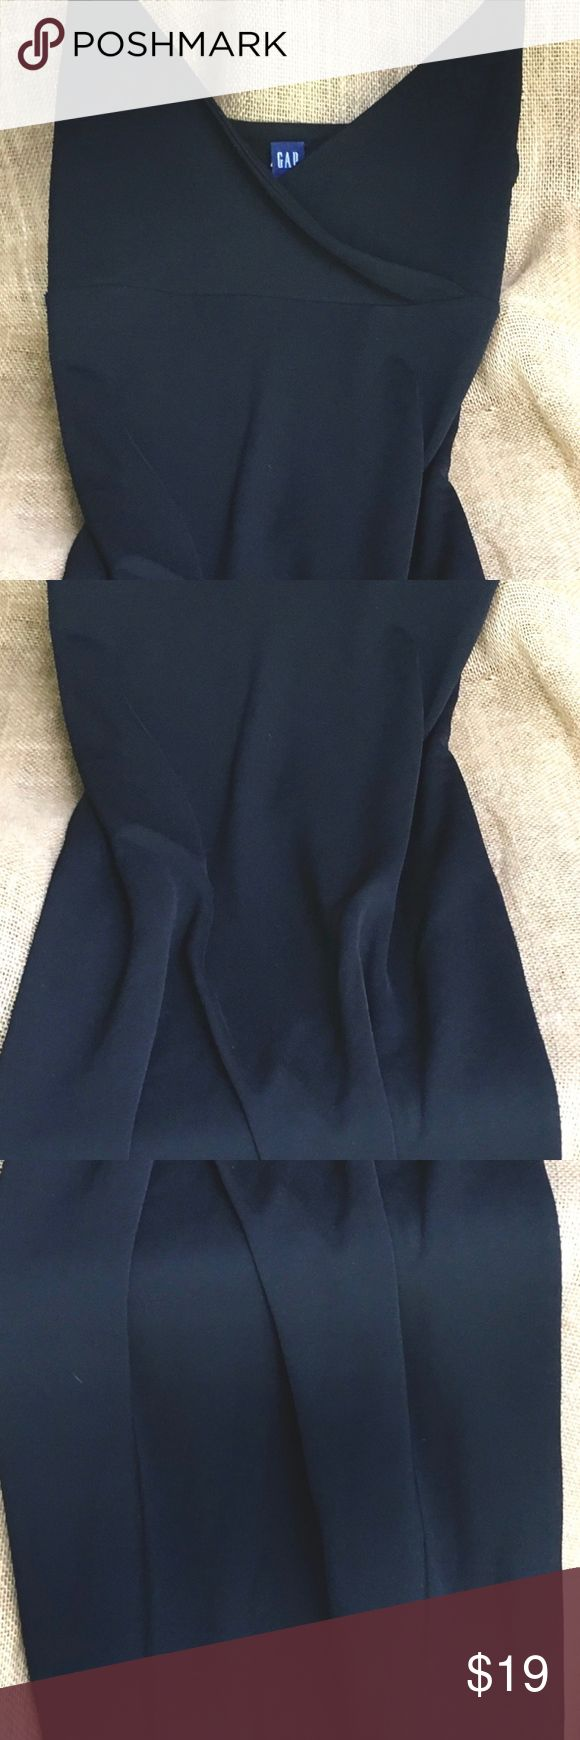 Classic black flr length stretch maxi dress GAP M Stunning, Classic & Simple black floor length stretch GAP Spaghetti Strap Tank Maxi Dress Sz M  This dress may be dressed up for a cocktail occasion or just worn as a casual, easy-on day dress. The material combination of 58% Rayon / 40% Polyester / 2% Spandex makes for an extremely slimming, figure flattering, slinky dress that completely eliminates any & all bulges. For real!  If you don't agree - no problem. Just send 'er on back for a…